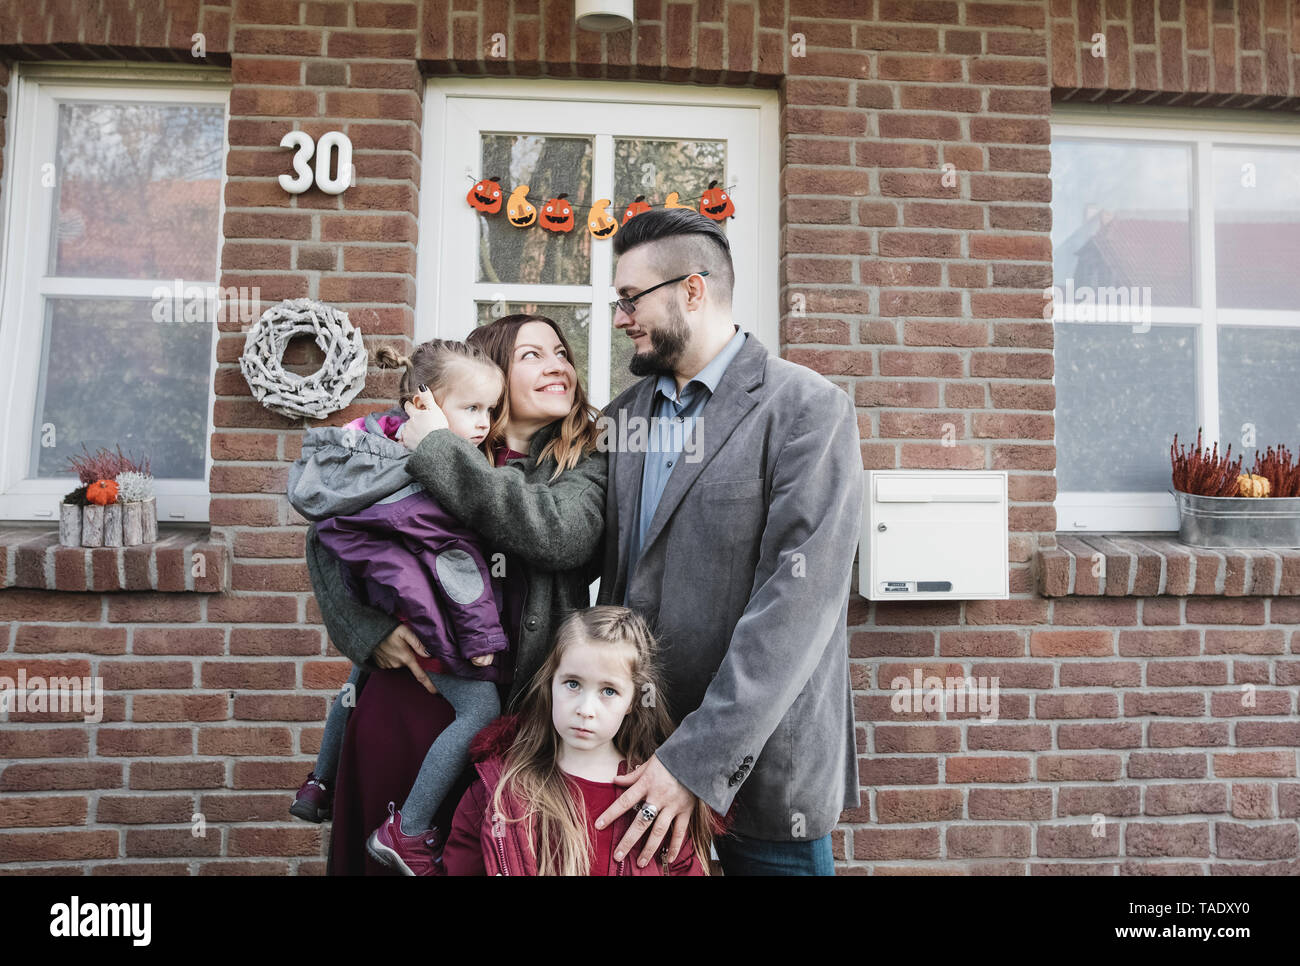 Portrait of family in front of their house - Stock Image